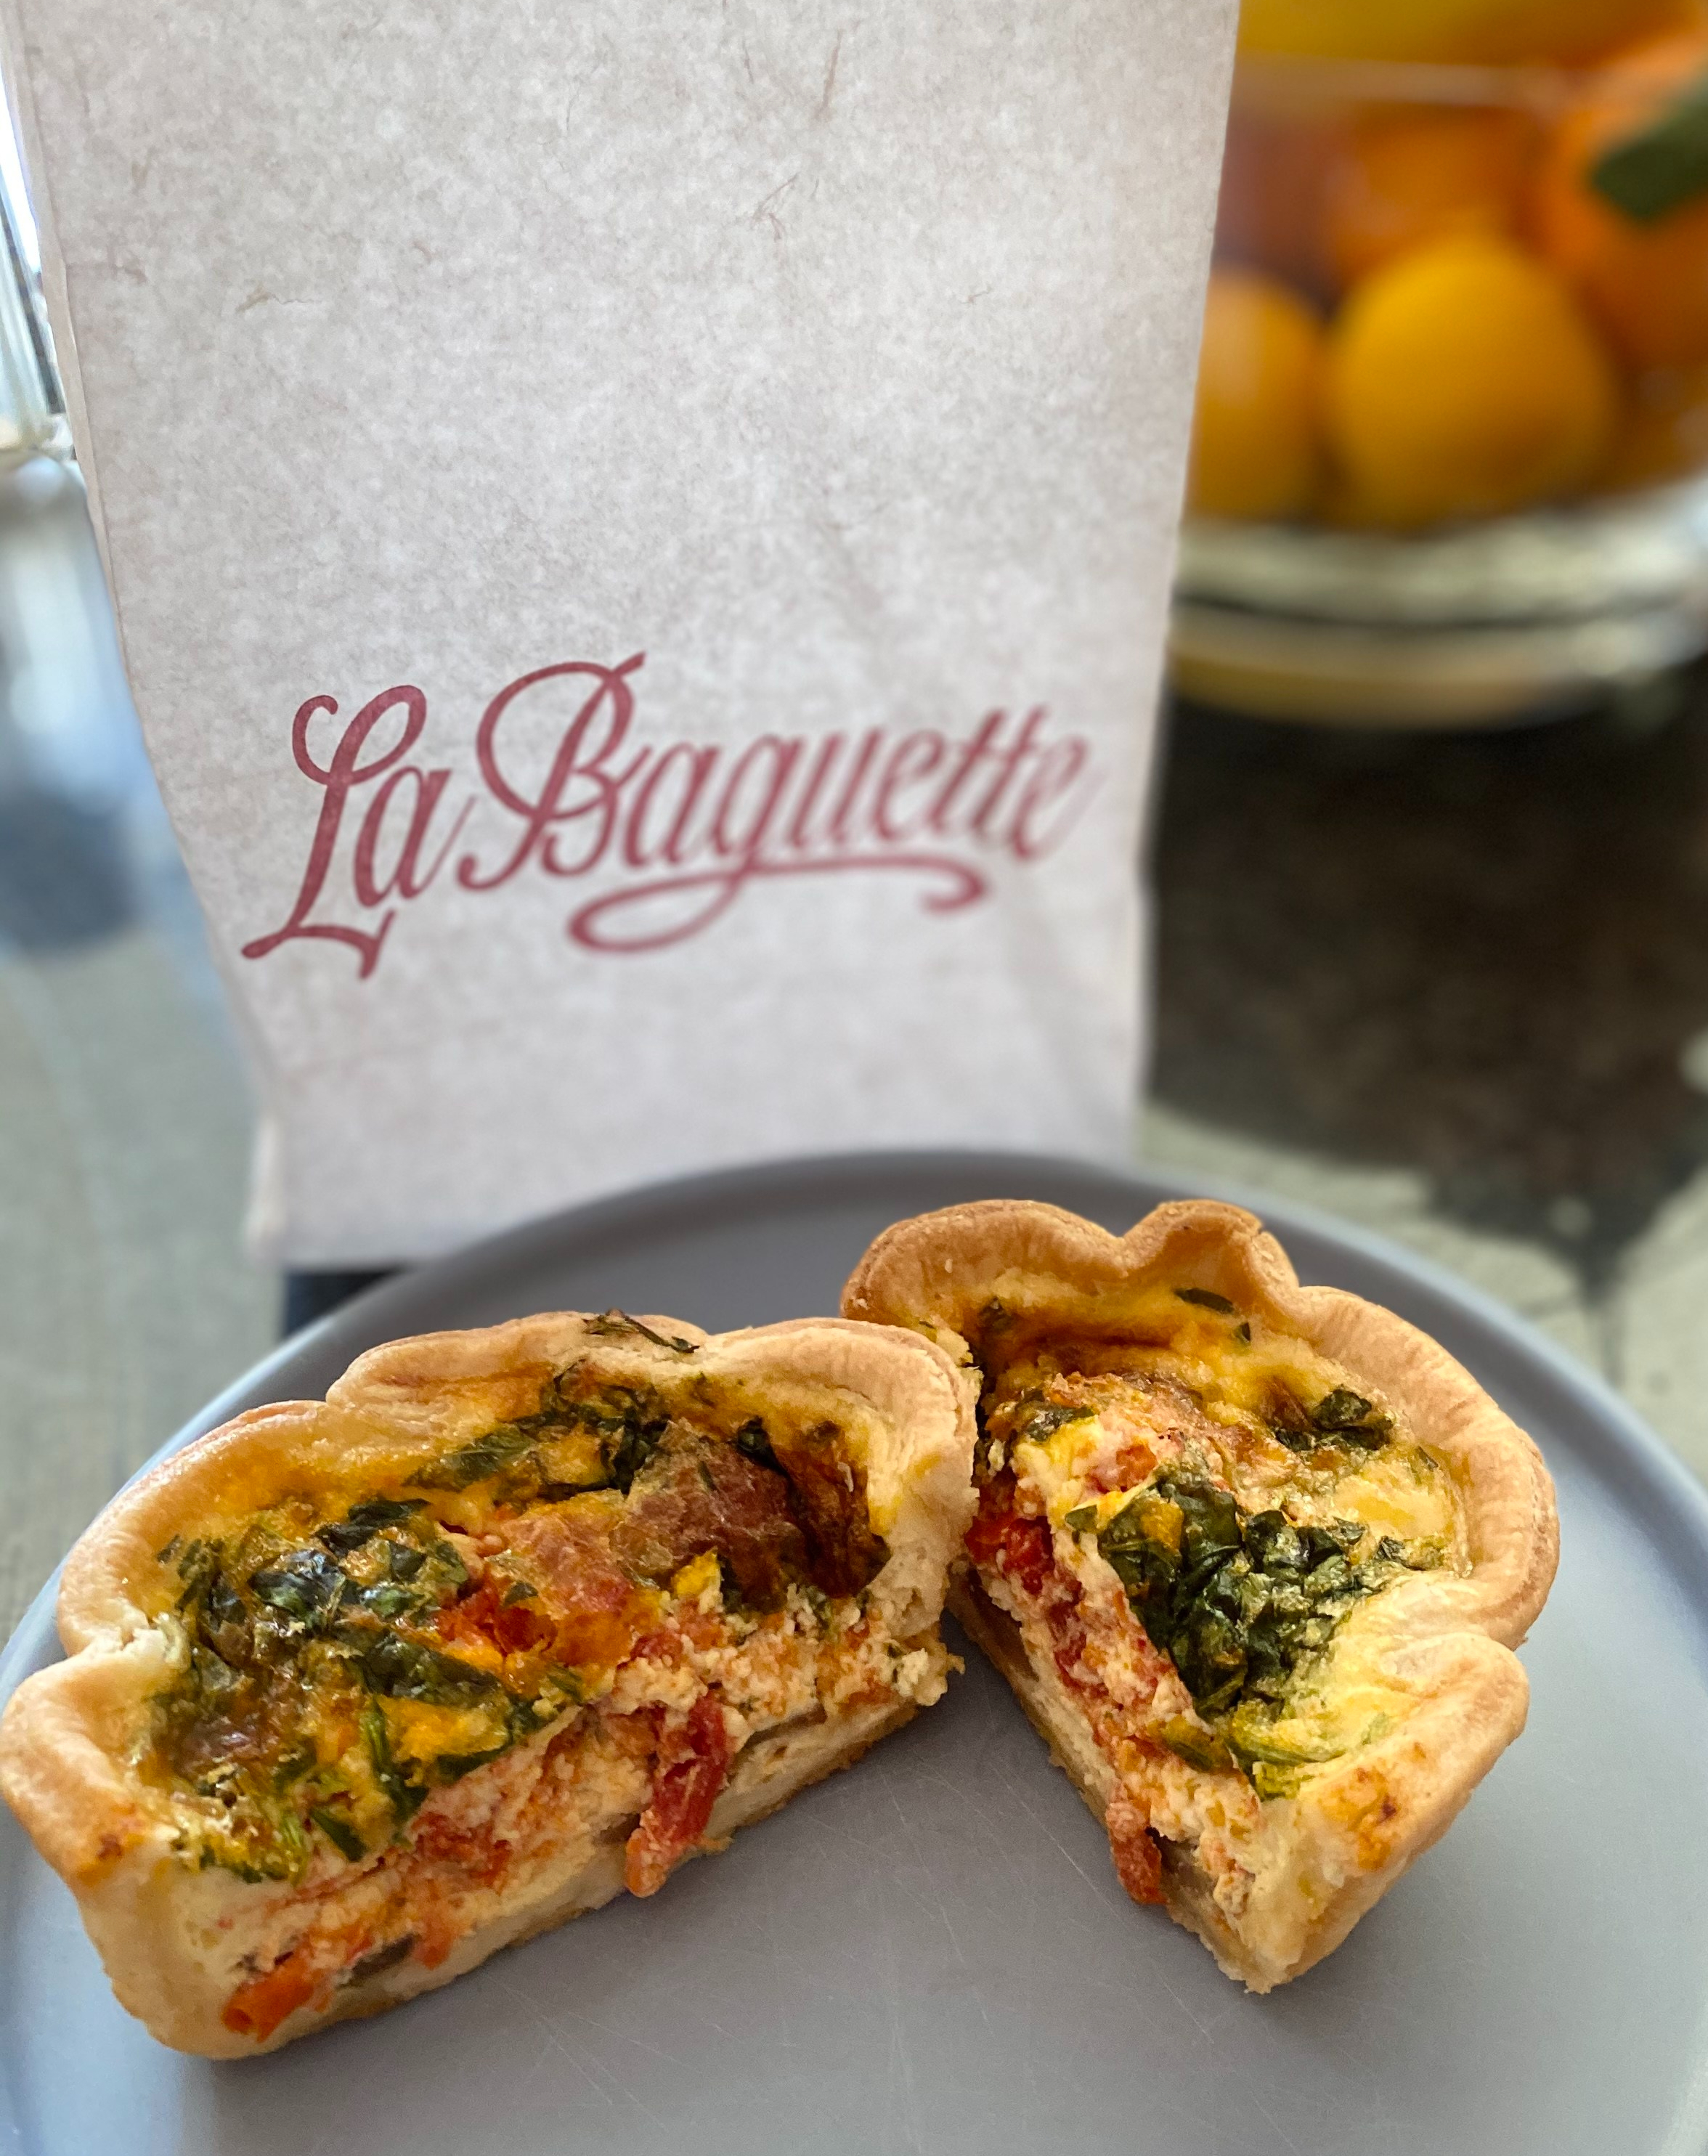 La Baguette sells some of the best Parisian food around. Check out their quiches and sandwiches.